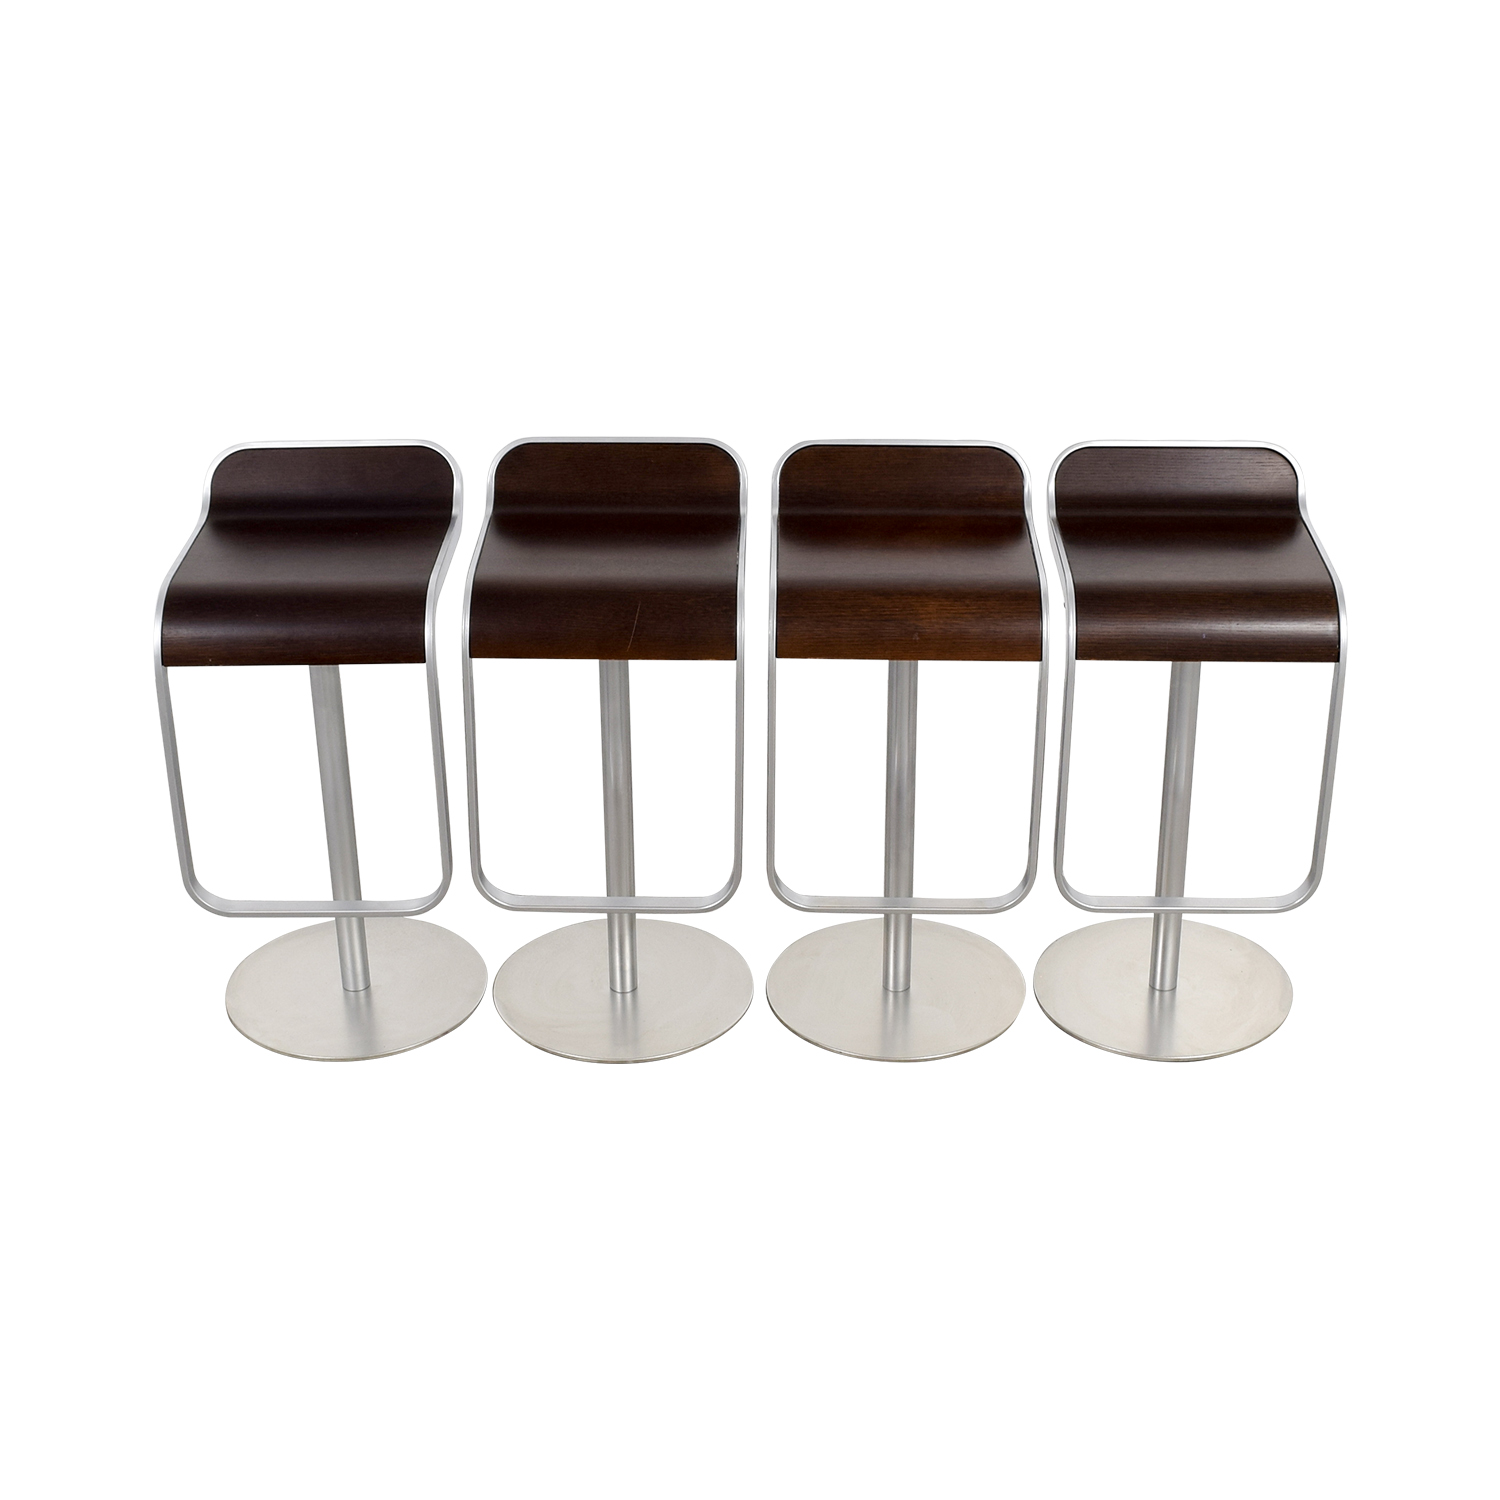 shop Design Within Reach Design Within Reach LEM Piston Stools online